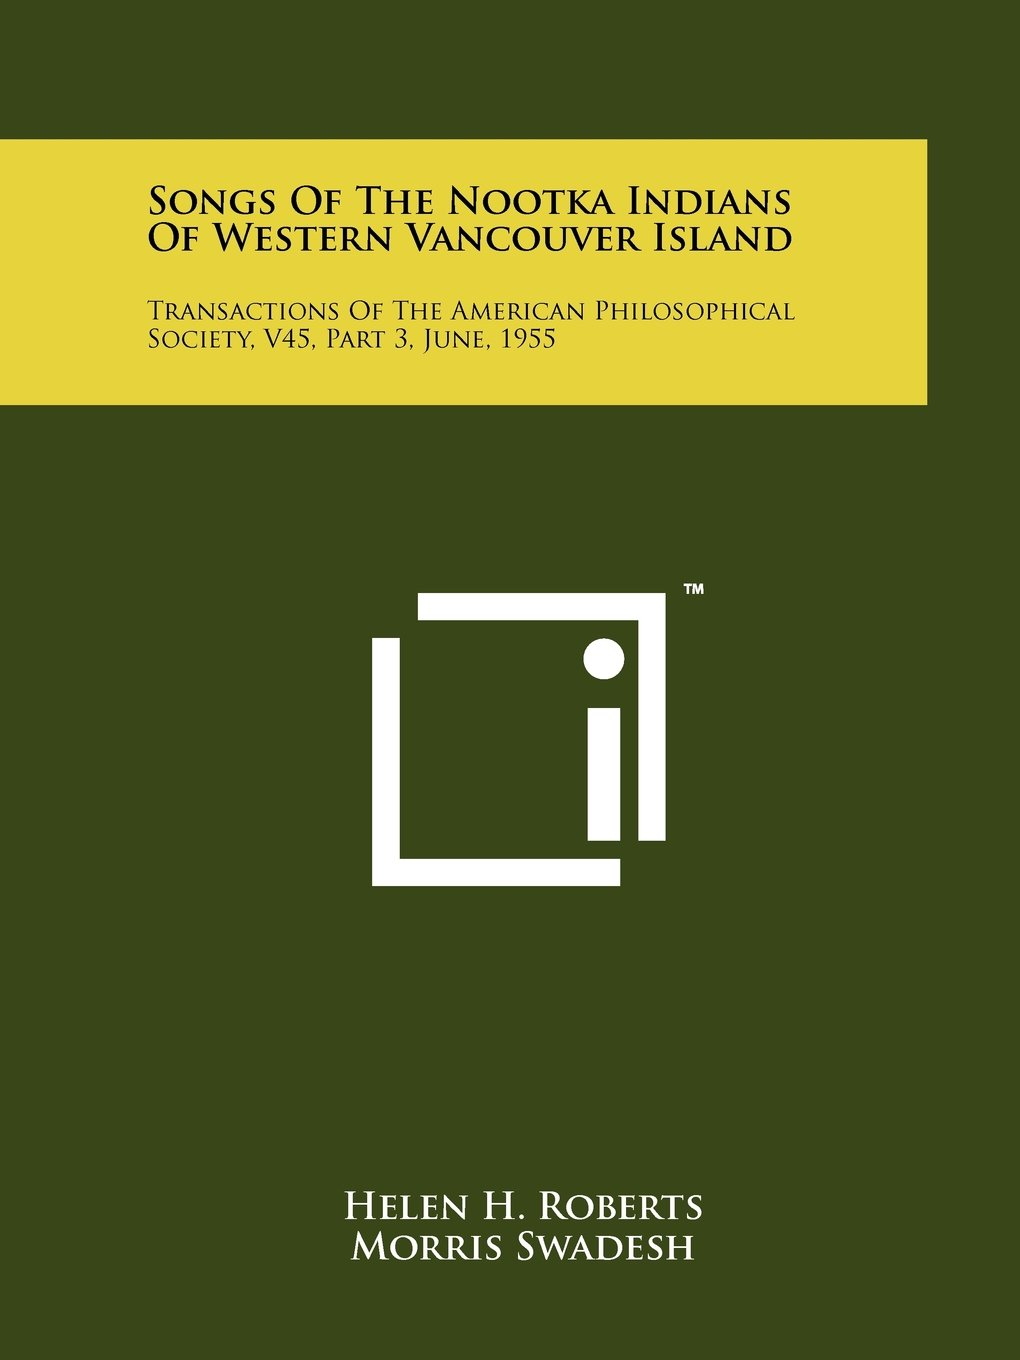 Download Songs Of The Nootka Indians Of Western Vancouver Island: Transactions Of The American Philosophical Society, V45, Part 3, June, 1955 pdf epub